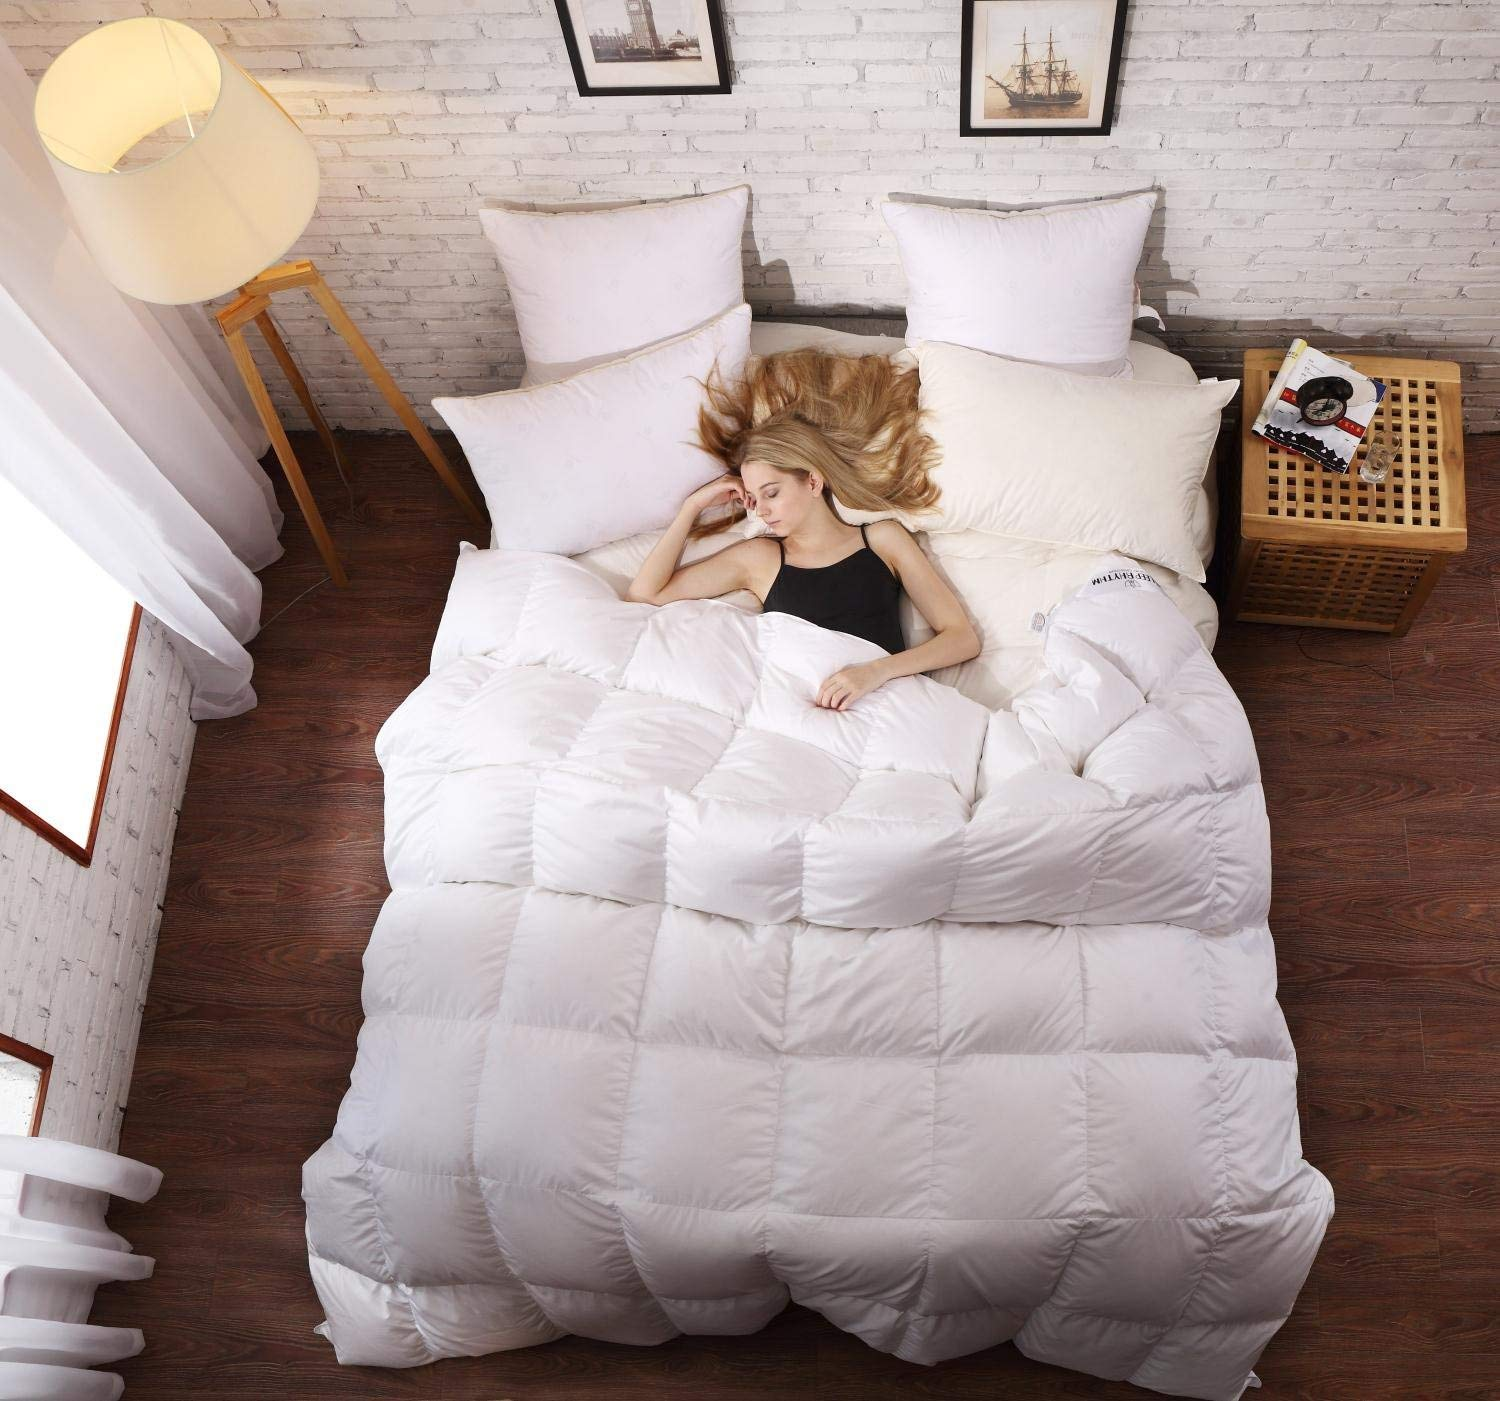 SLEEP RHYTHM Luxurious Goose Down Comforter Twin Size, Duvet Insert, Medium Weight for All Season, Hypoallergenic, 600 Thread Count, 750 Fill Power, 100% Egyptian Cotton, White Color, Twin Size 68